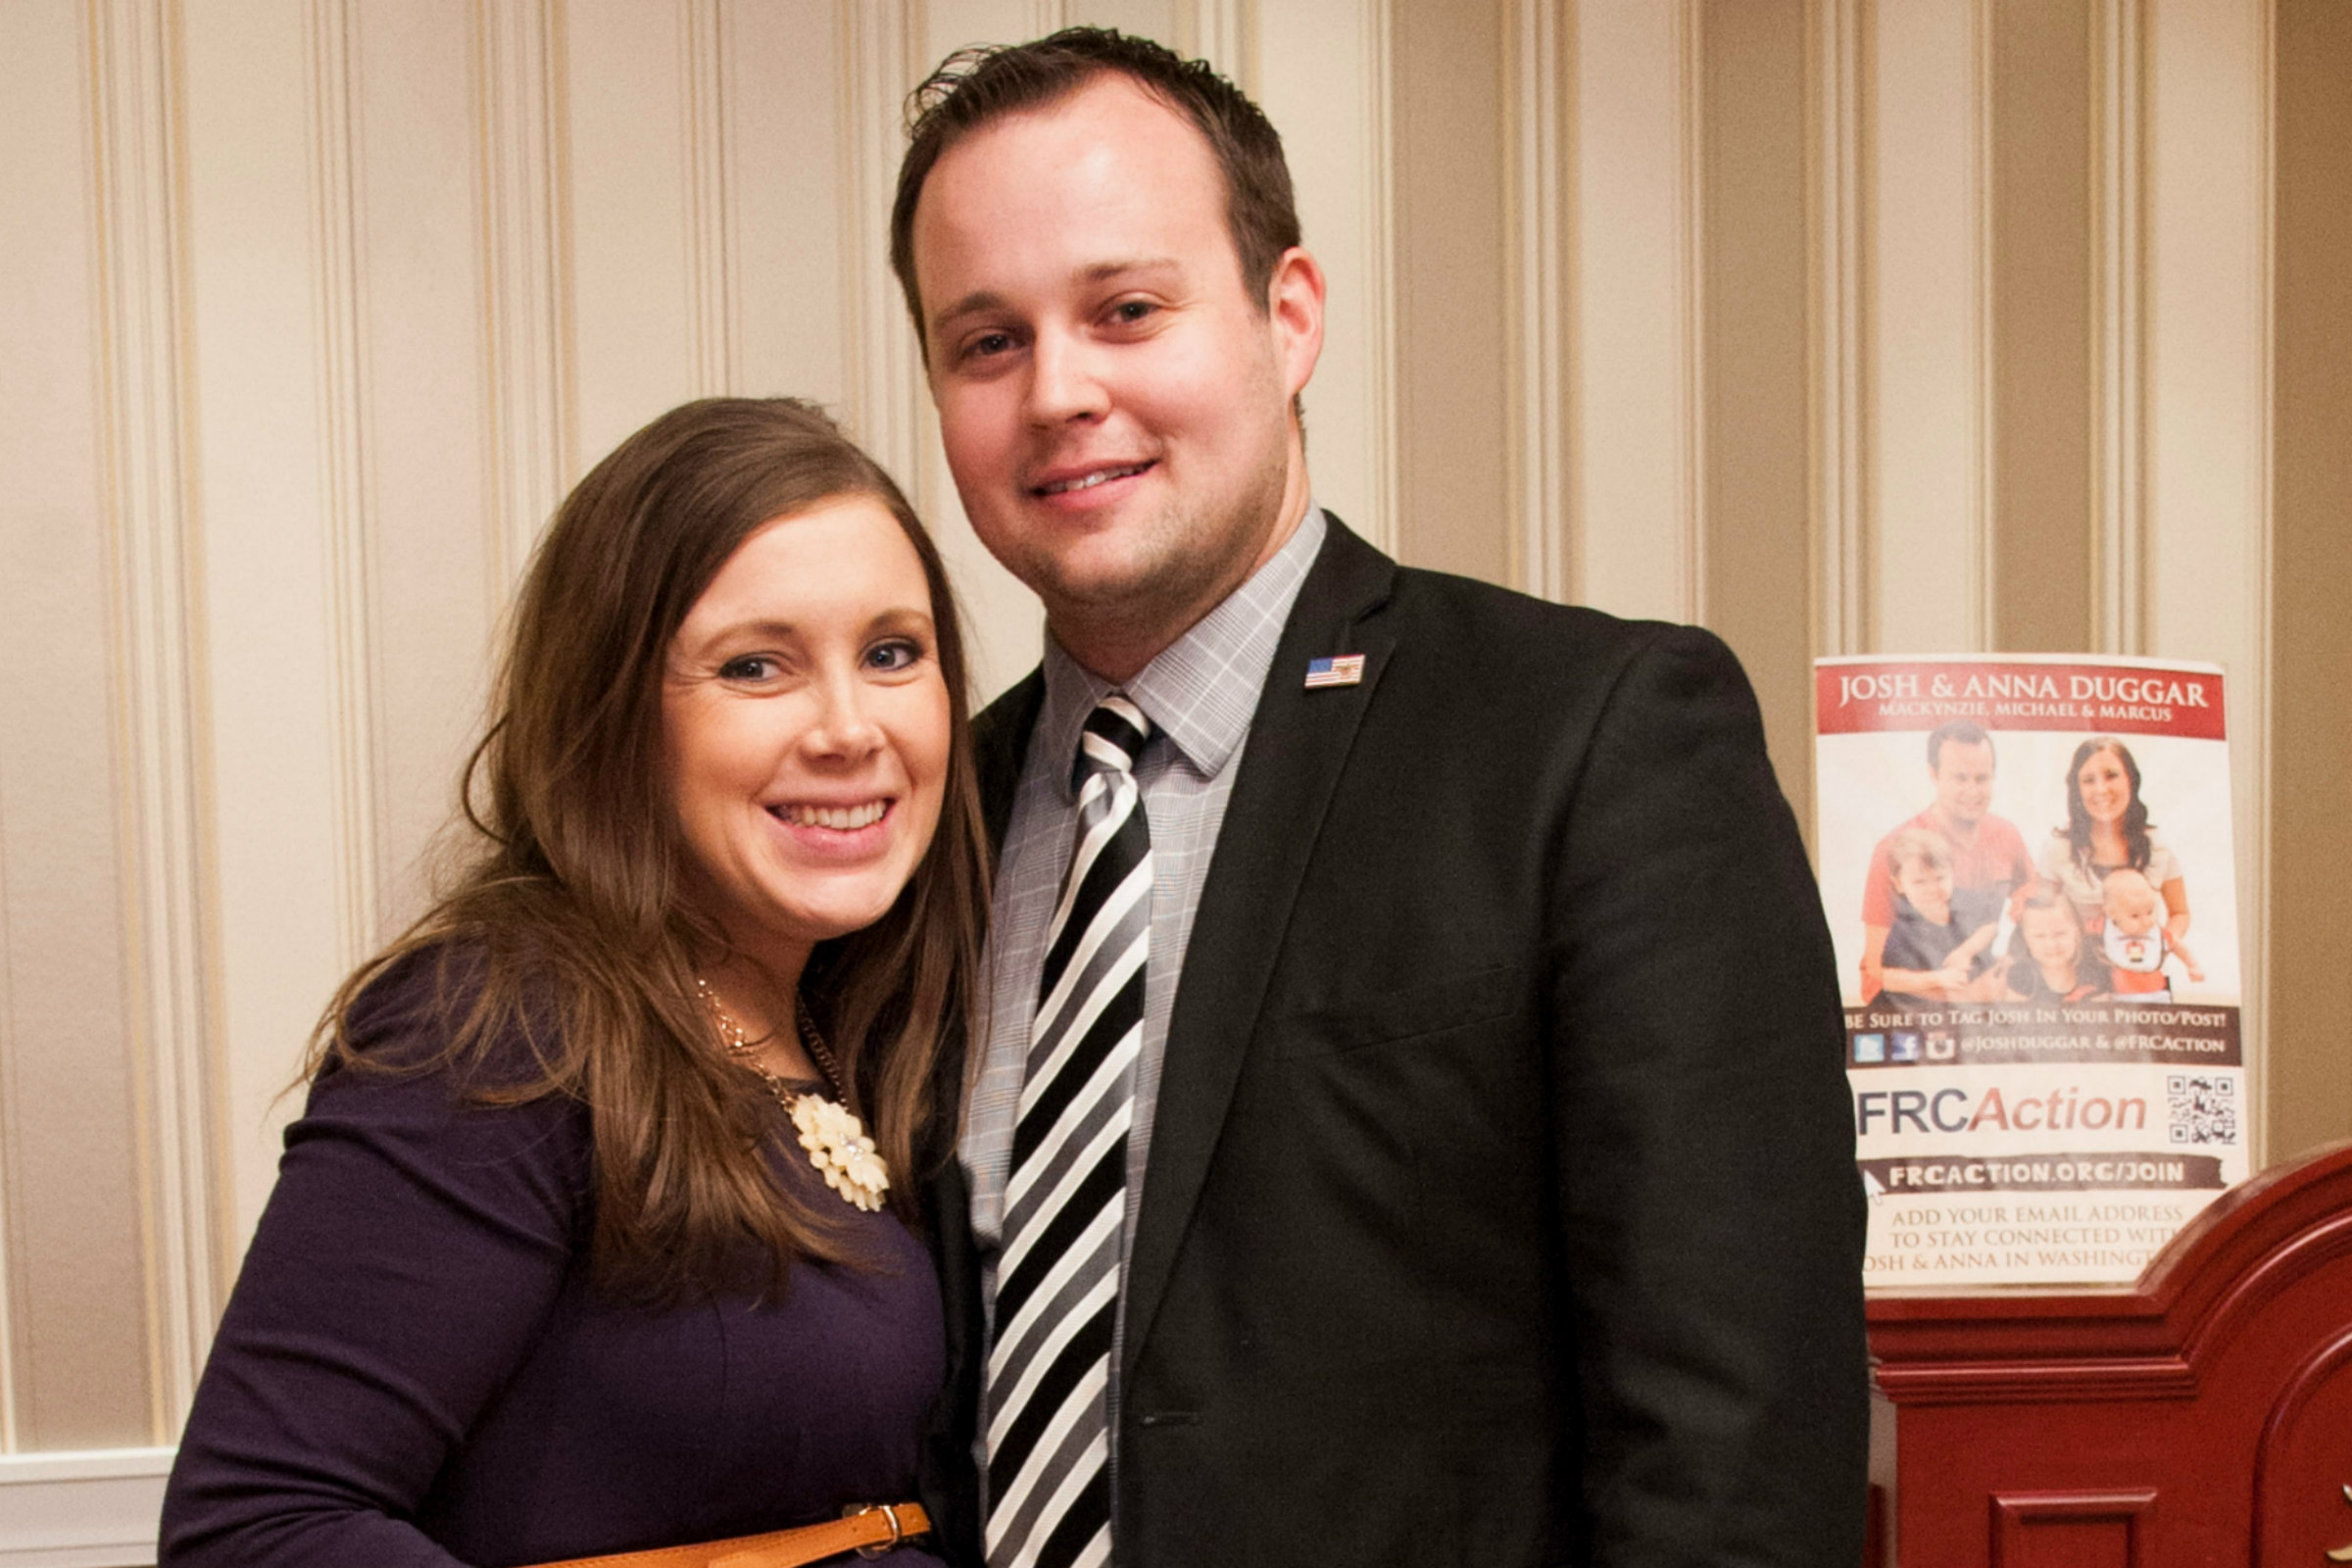 Anna Duggar, a white woman with shoulder-length brown hair and wearing a purple dress, poses with her husband, Josh Duggar, a white man wearing a black suit